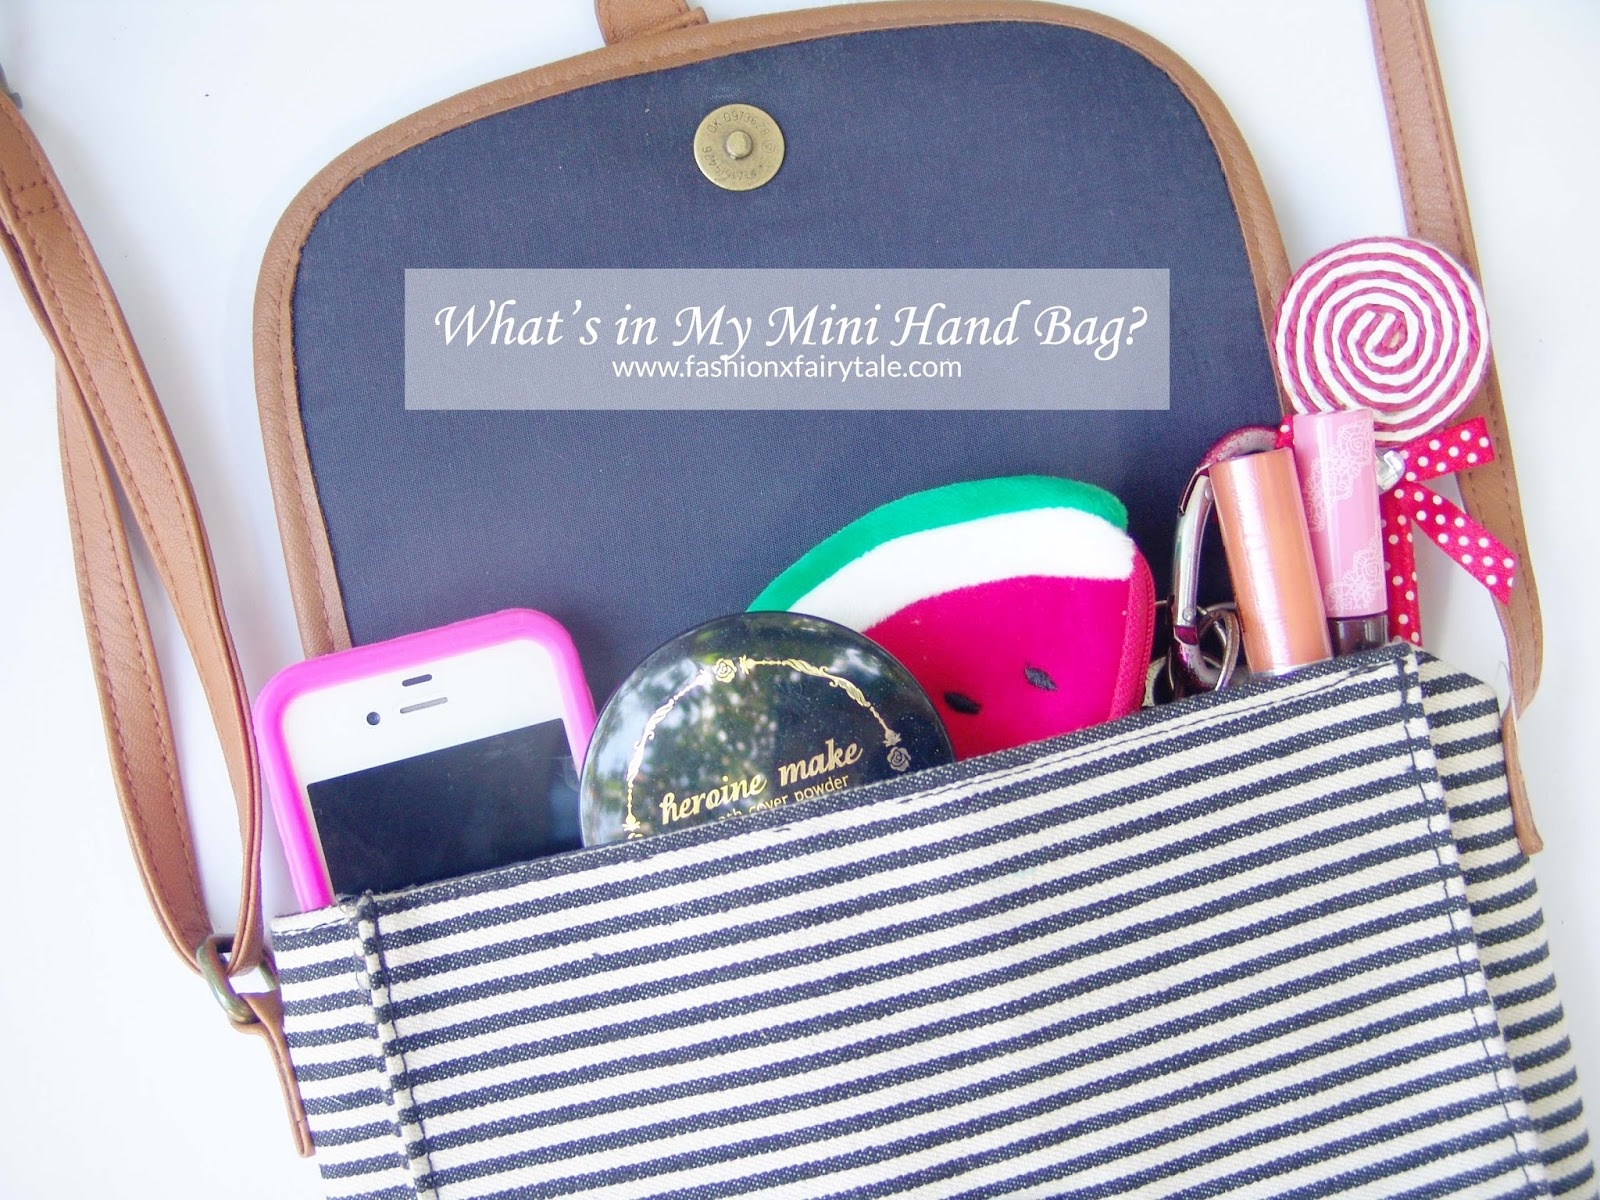 What's in My Mini Hand Bag?